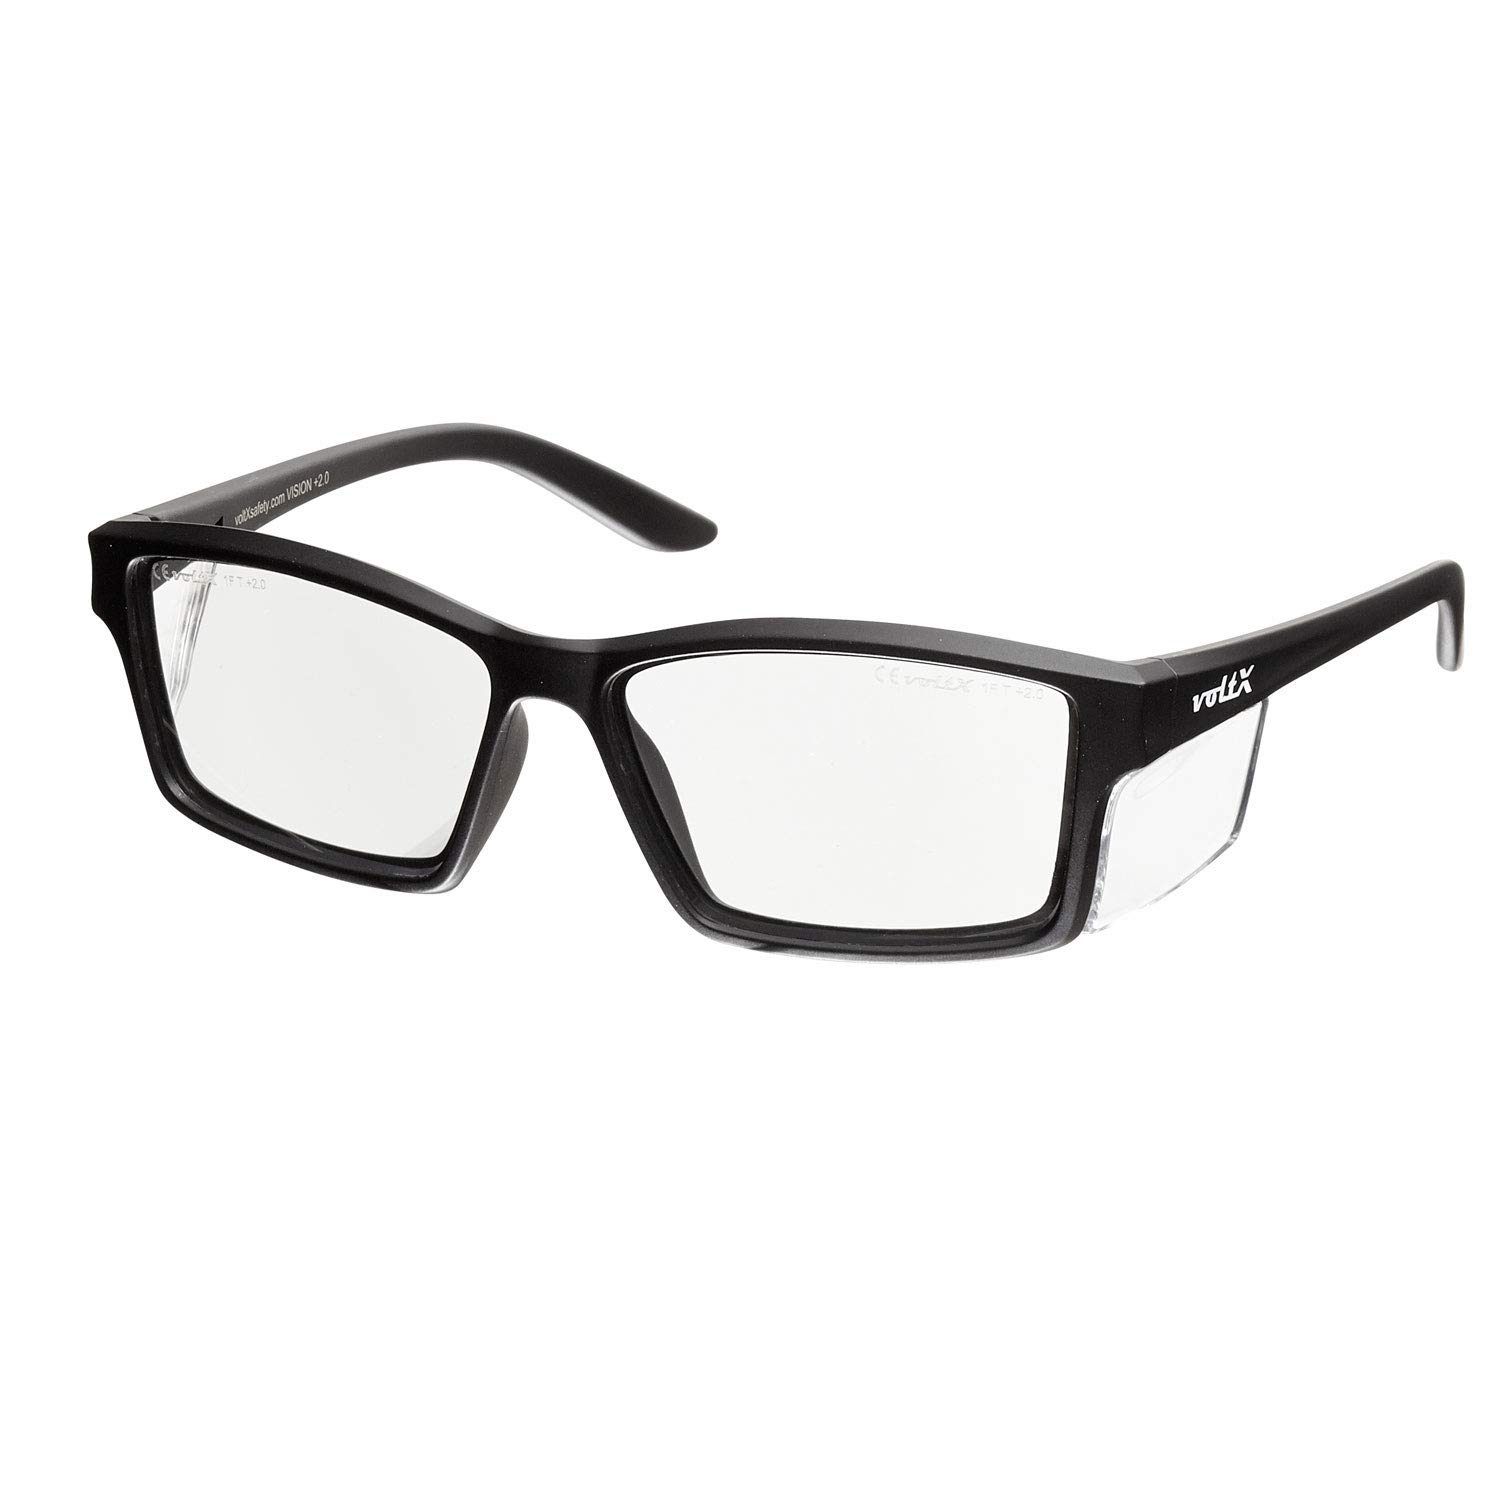 voltX 'VISION' Safety Readers (Clear +4.0 Dioptre Lens) Full Lens Magnified Reading Safety Glasses CE EN166ft certified - Anti fog coated UV400 lens StraightLines